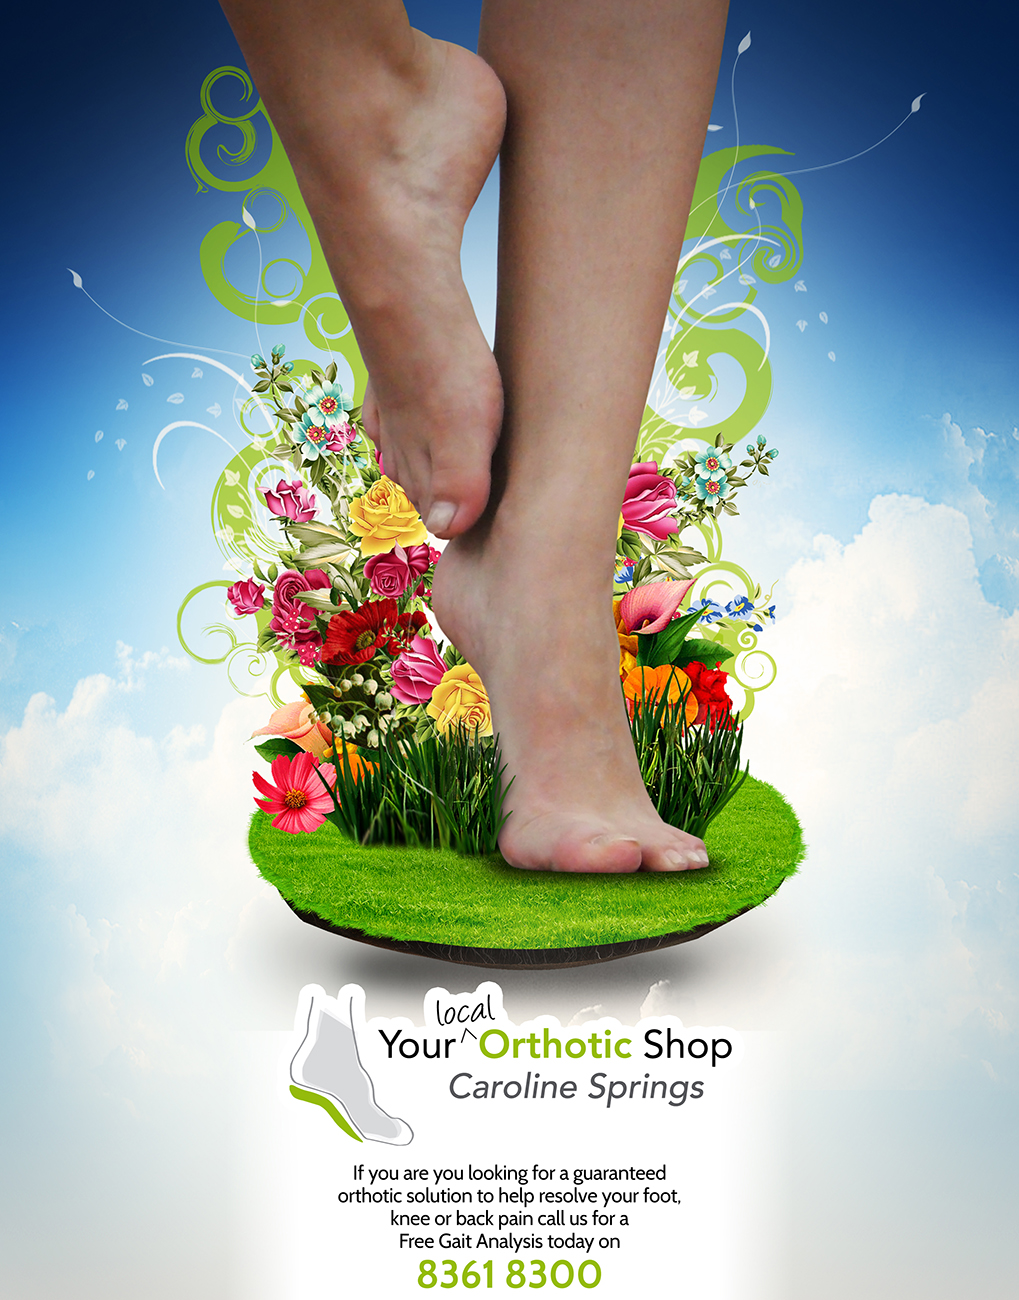 Brochure, Orthotic Shop